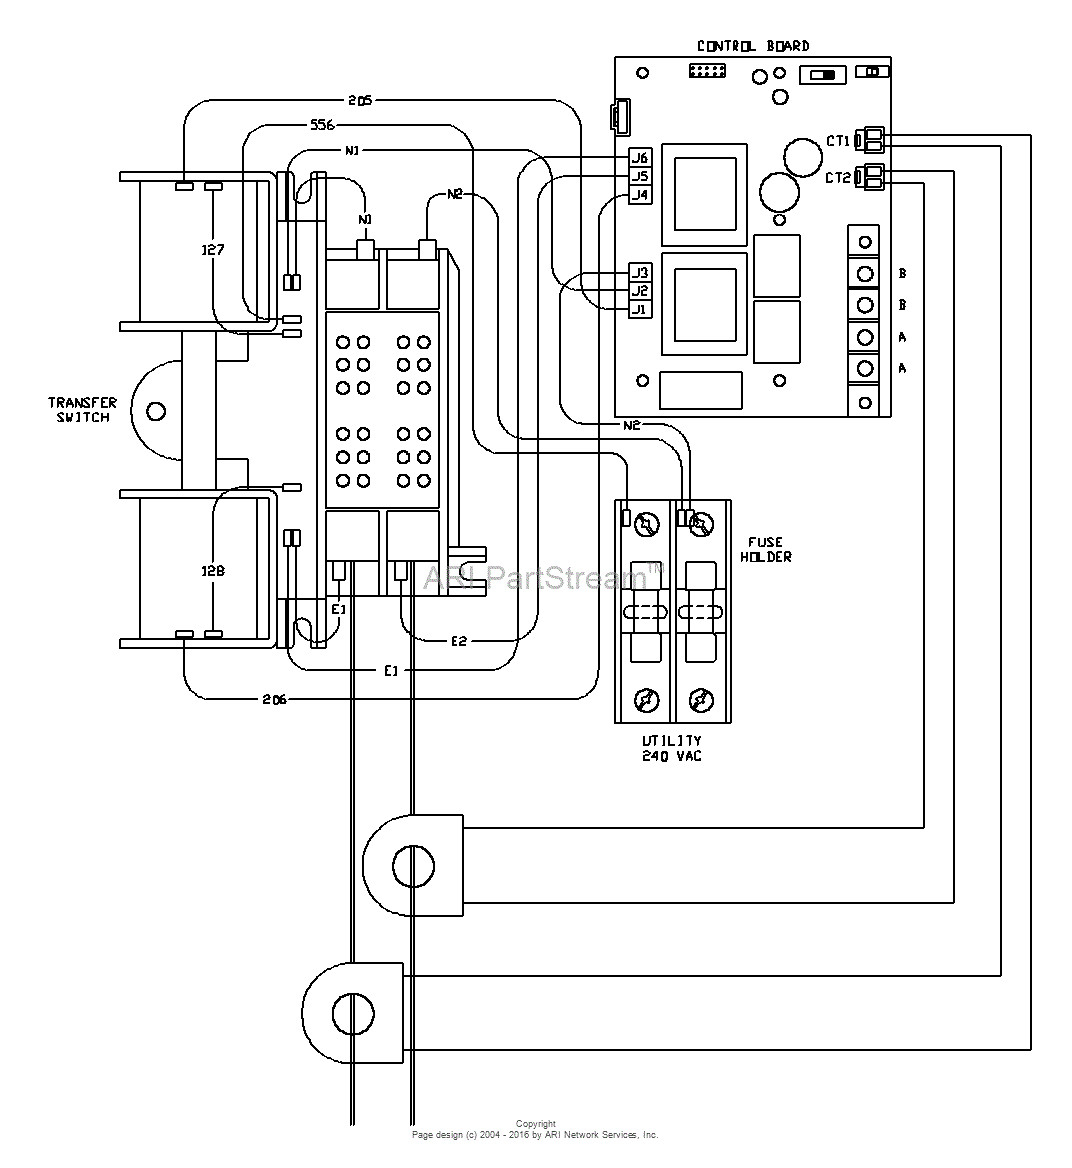 generac manual transfer switch wiring diagram Download-Switch Wiring Diagram 5a1c17adc41e5 10 Kw Generac Wiring Diagram Manual Beautiful Transfer 12-k